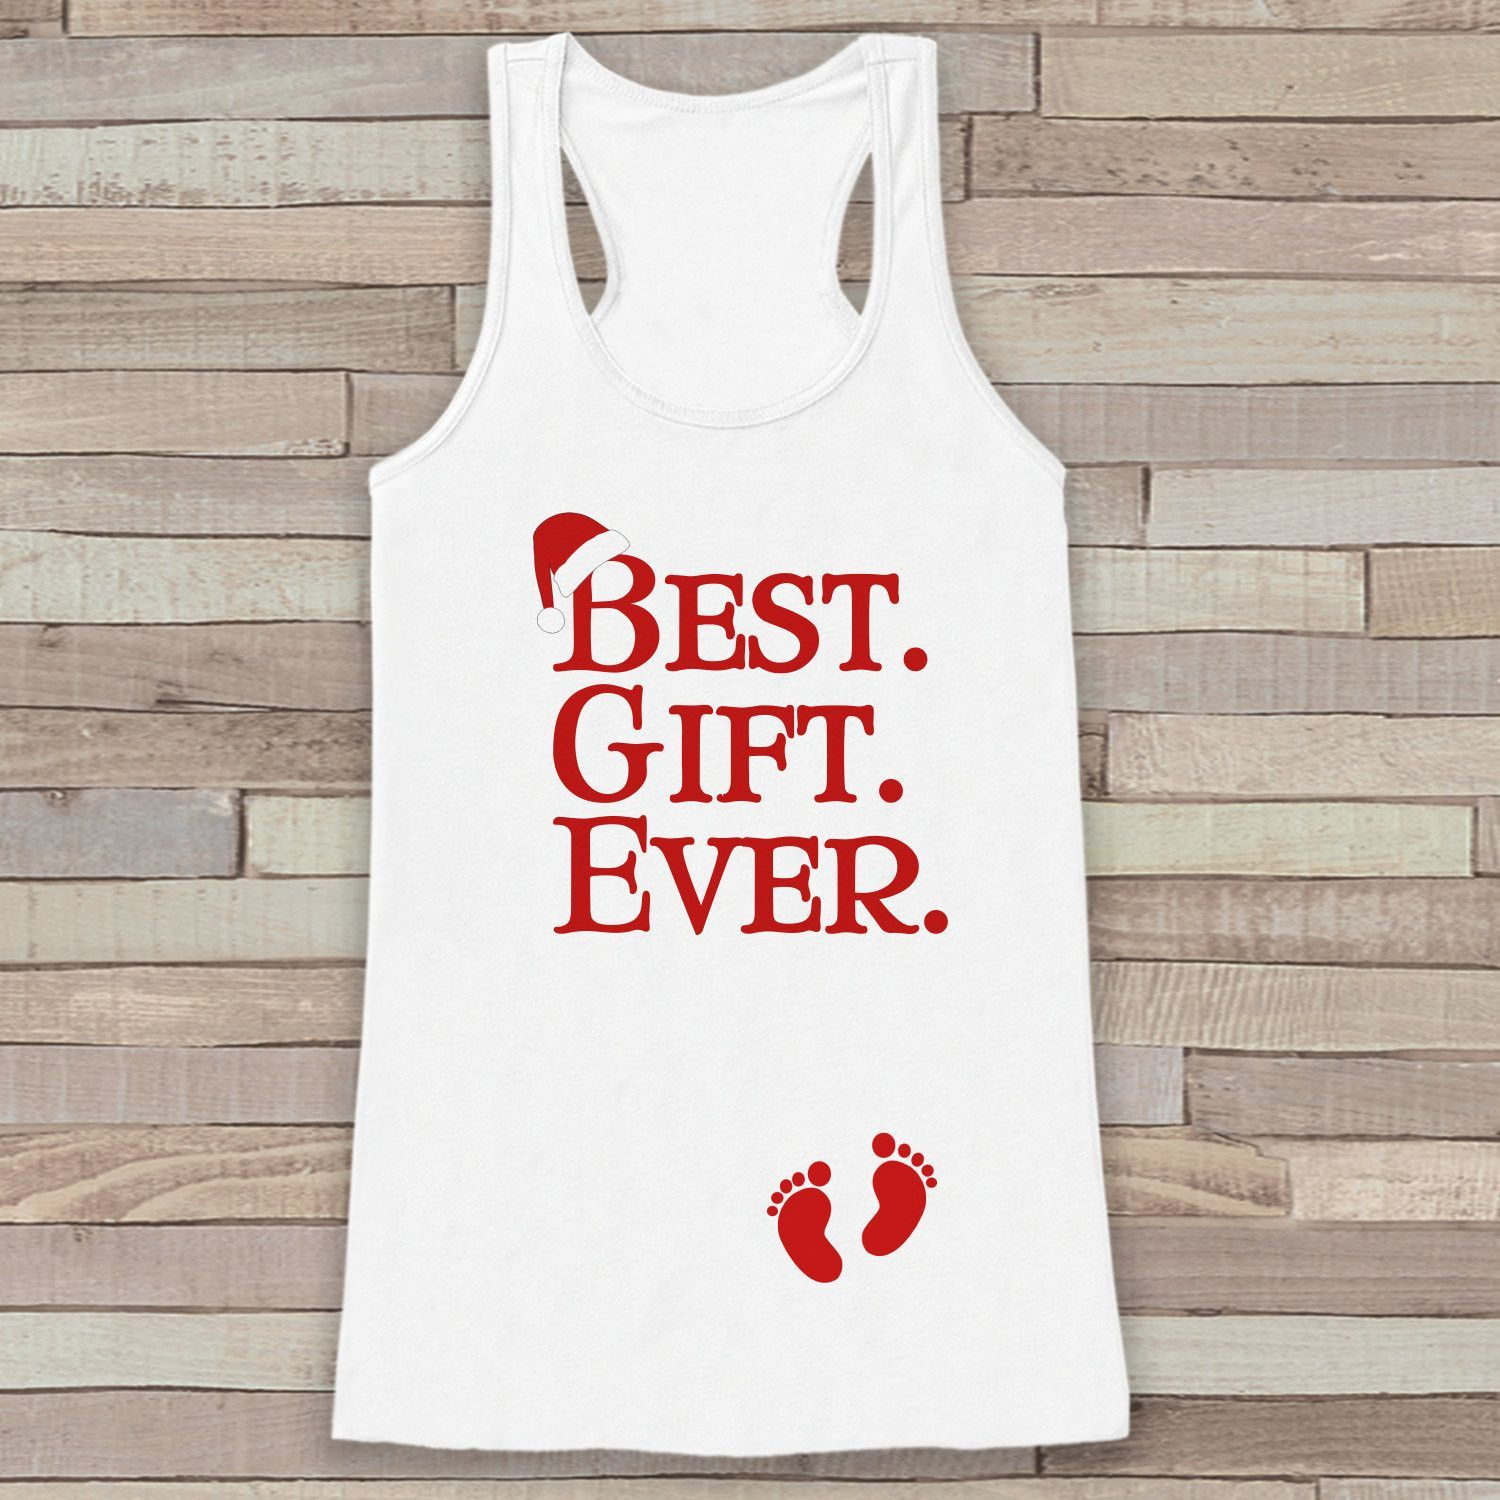 Best Gift Ever Tank Christmas Shirt Pregnancy Reveal Baby Announcement Womens White Holiday Idea